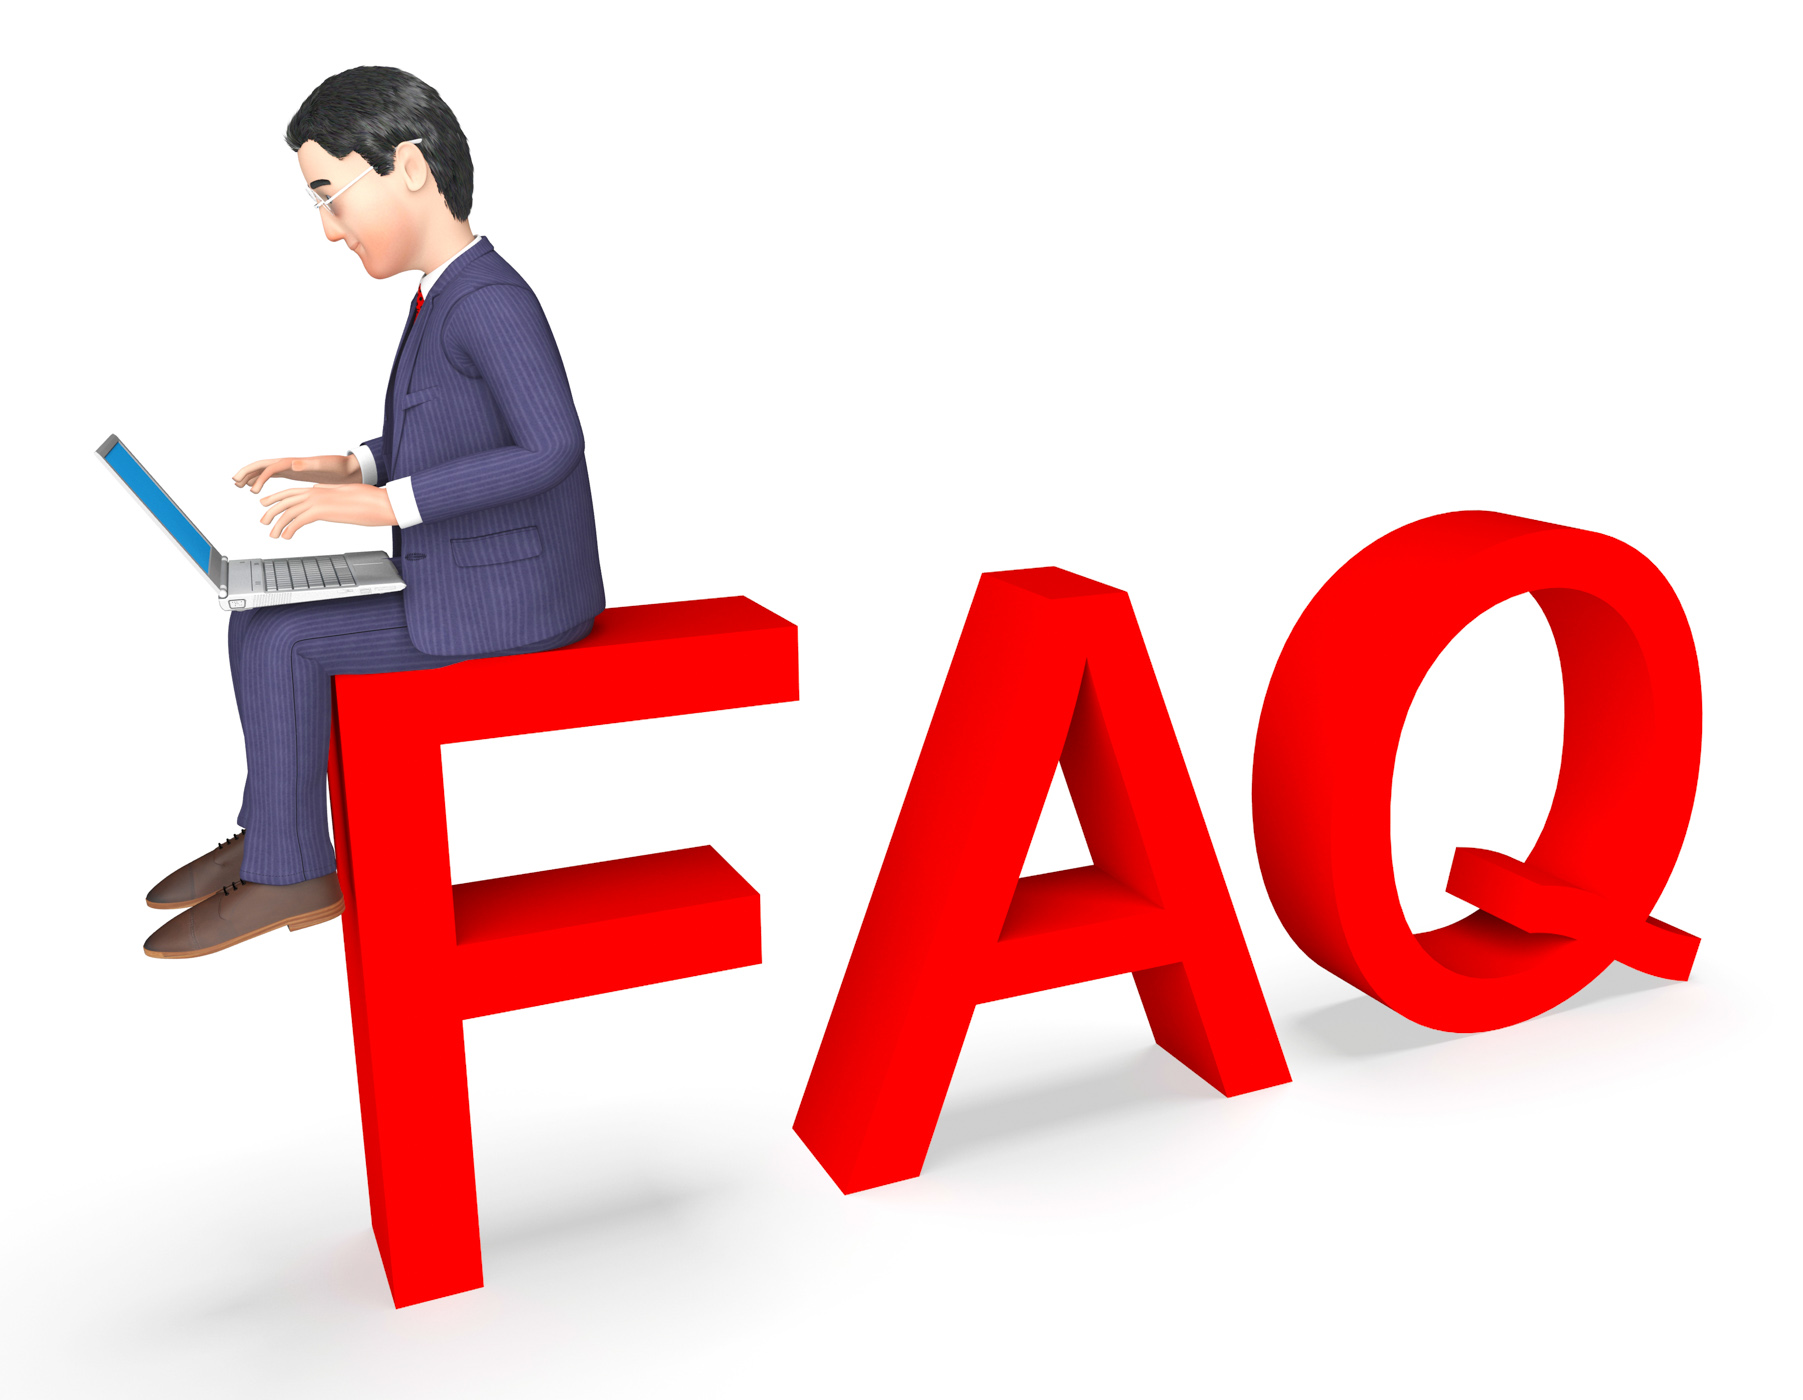 Character faq shows frequently asked questions and advice 3d rendering photo